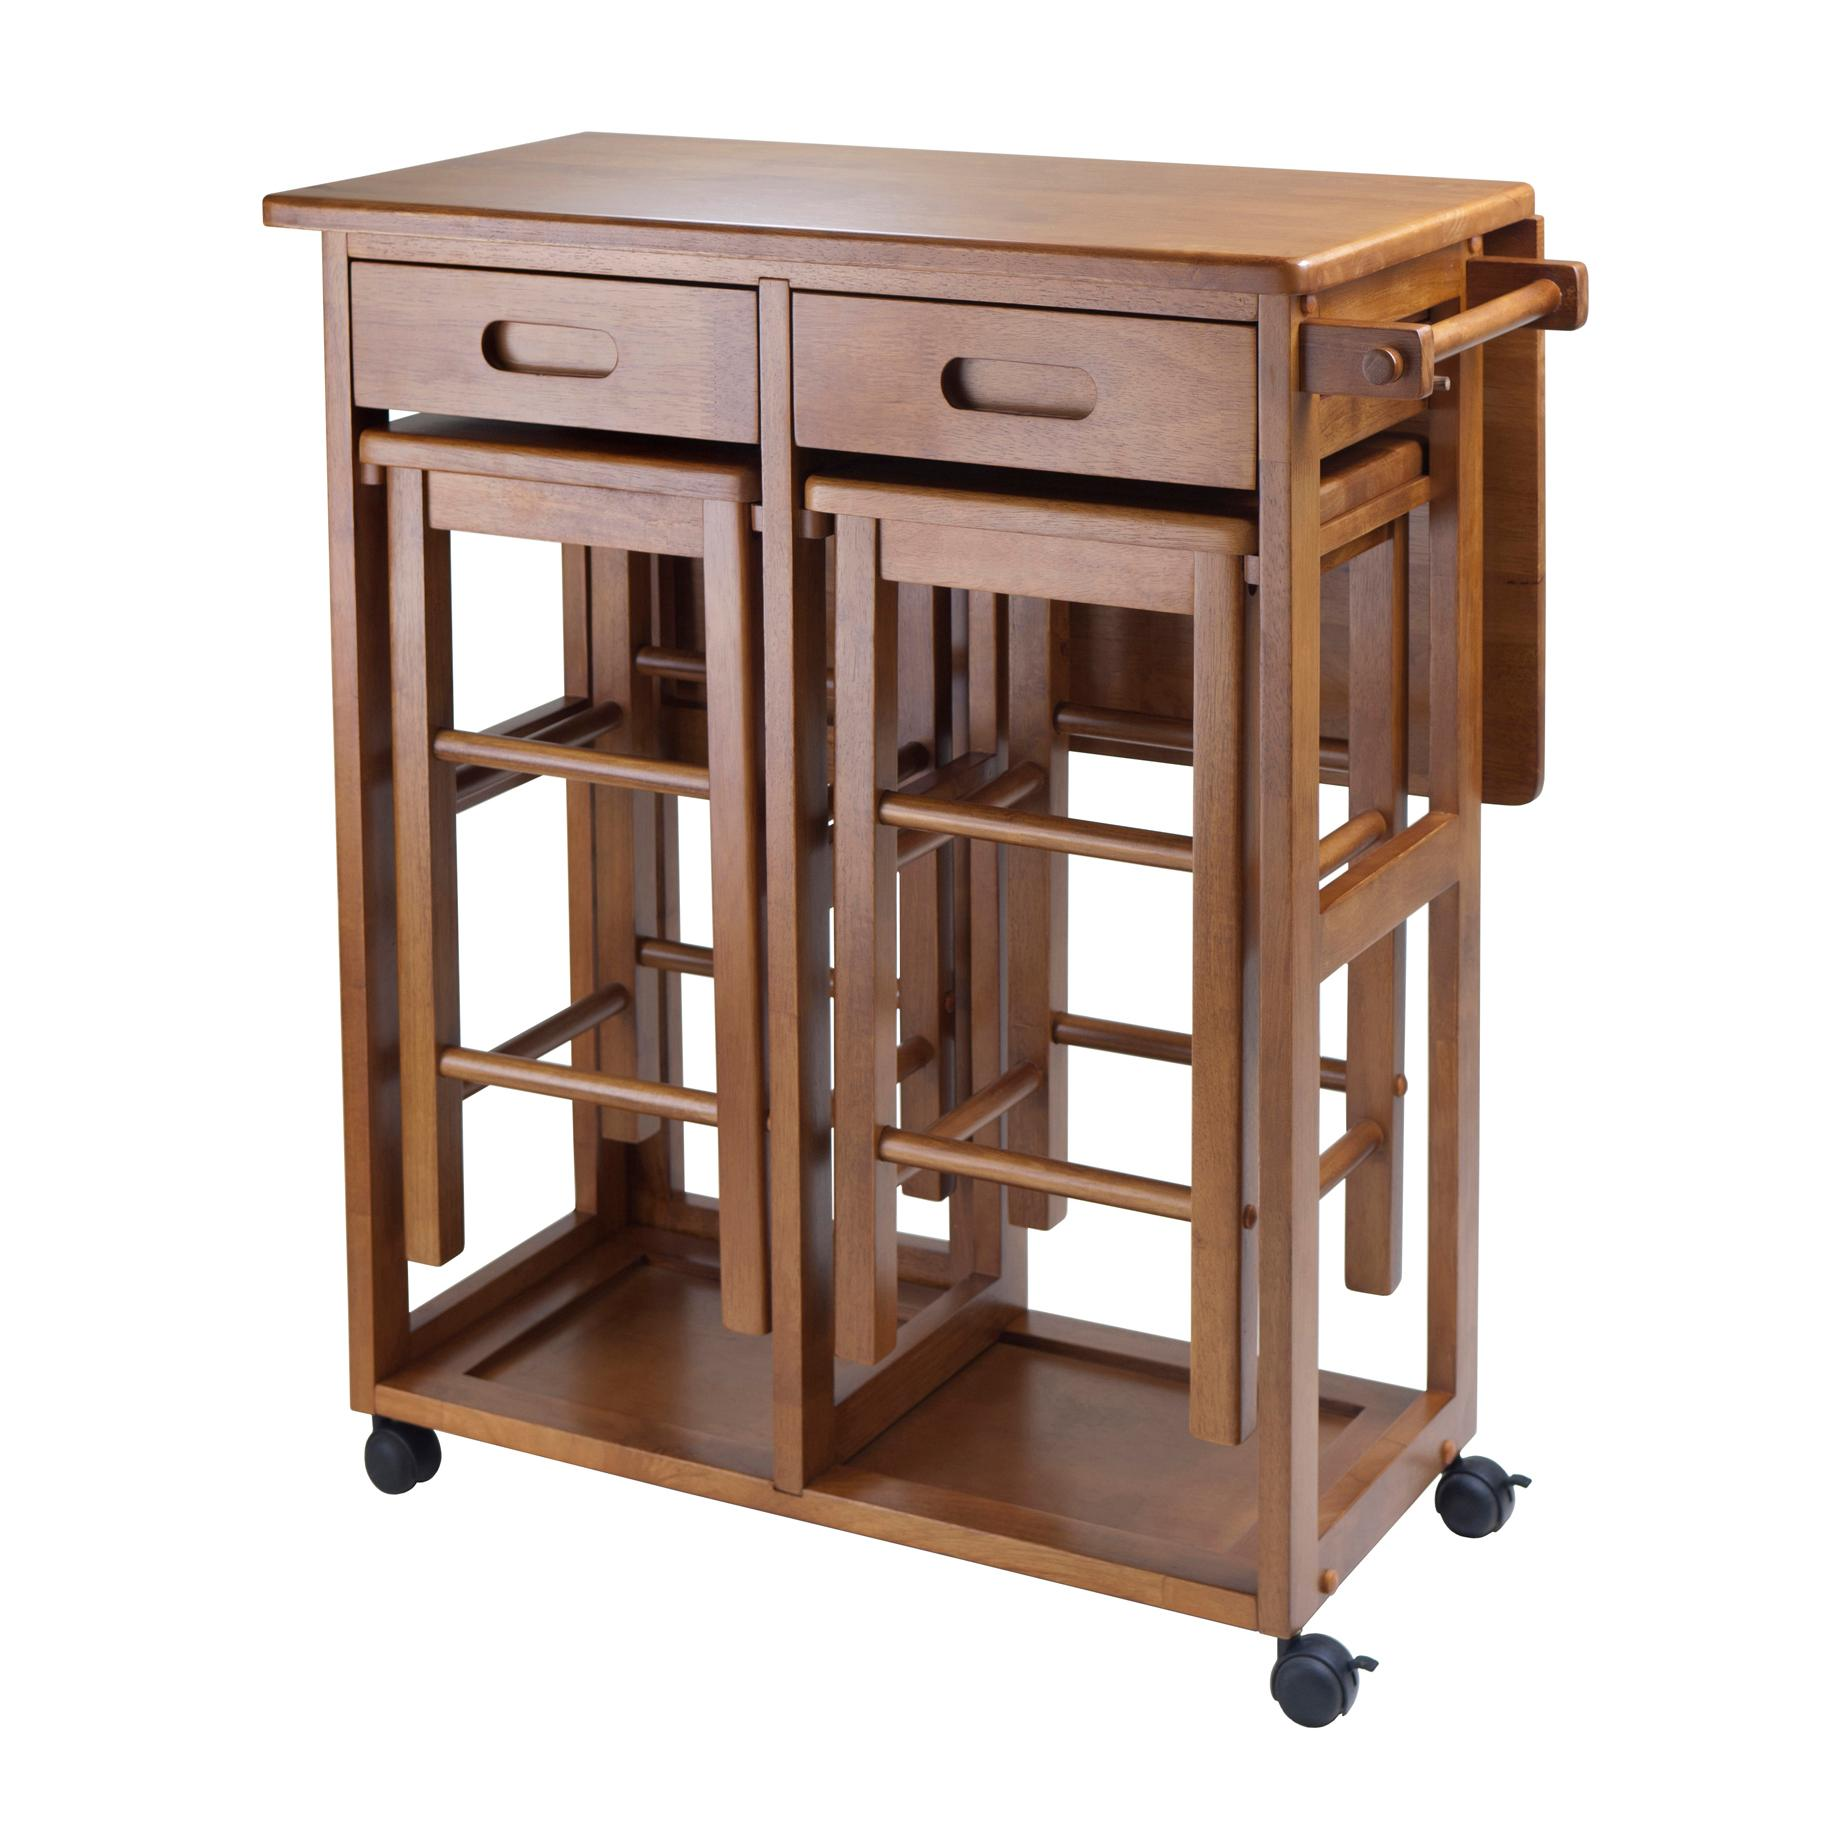 Kitchen Table With Stools Underneath: Winsome 39330 Suzanne Kitchen, Square, Teak